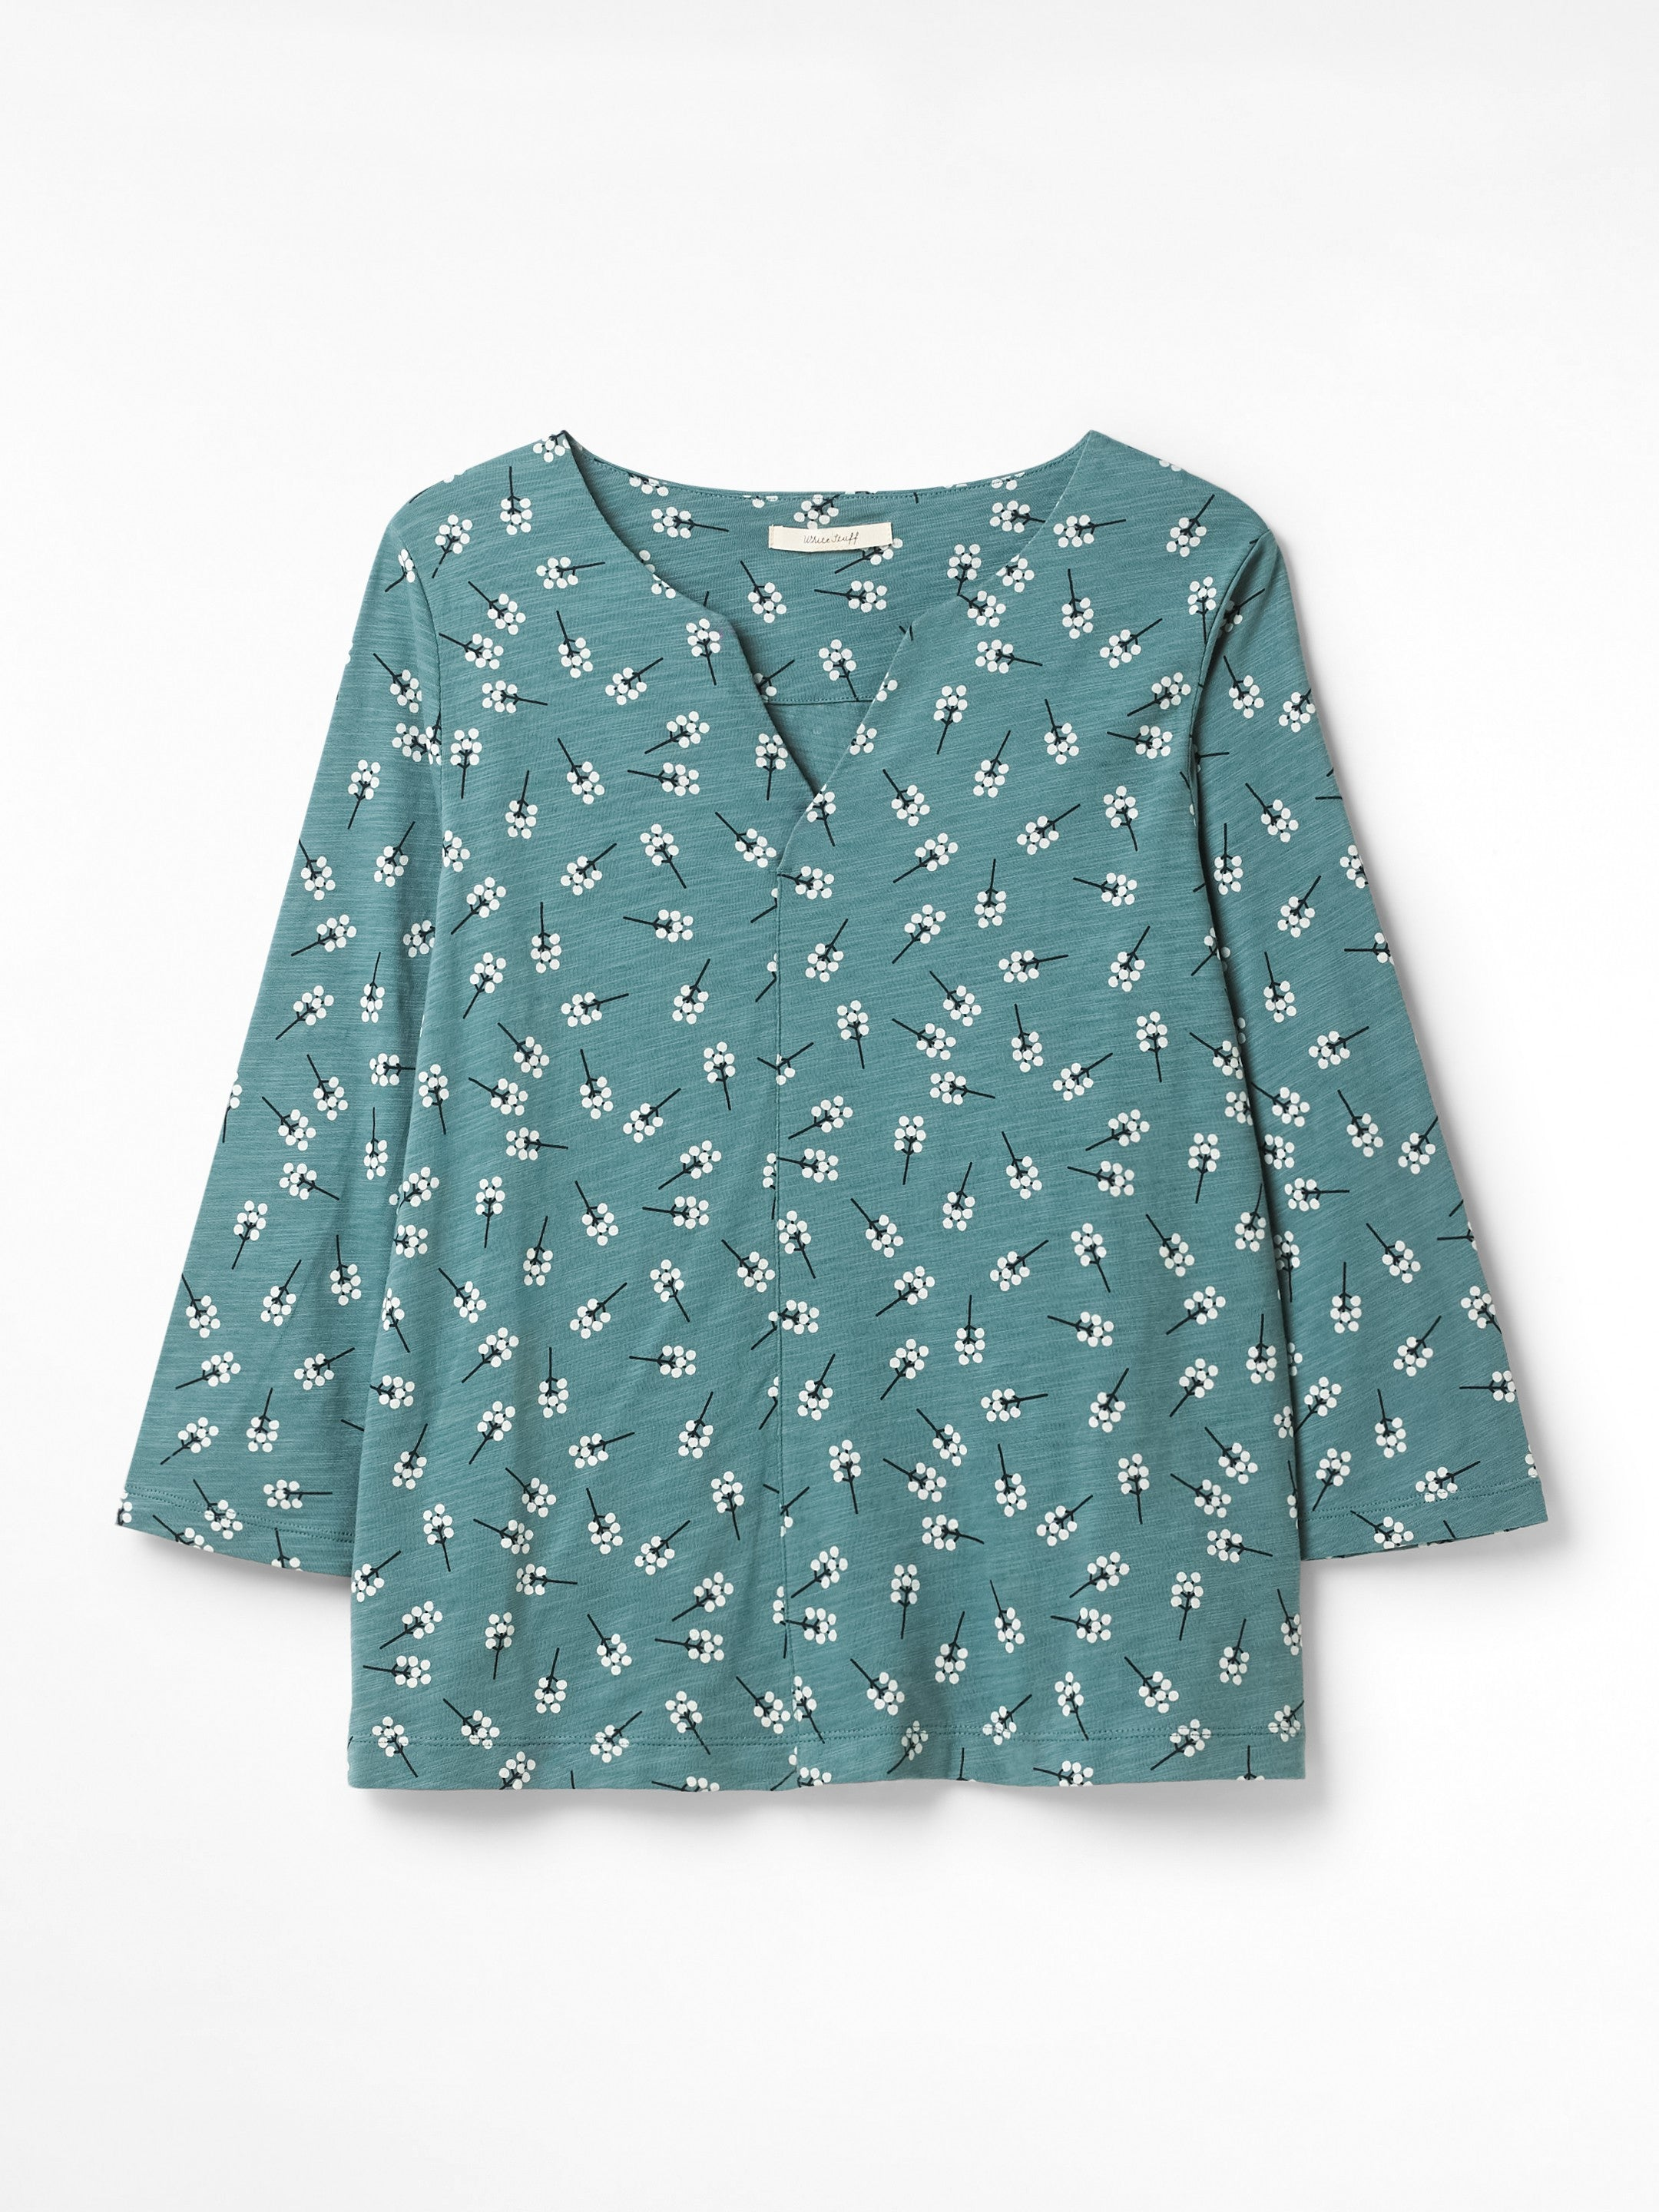 White Stuff Nilly Print Jersey Top for Ladies in Glassy Teal